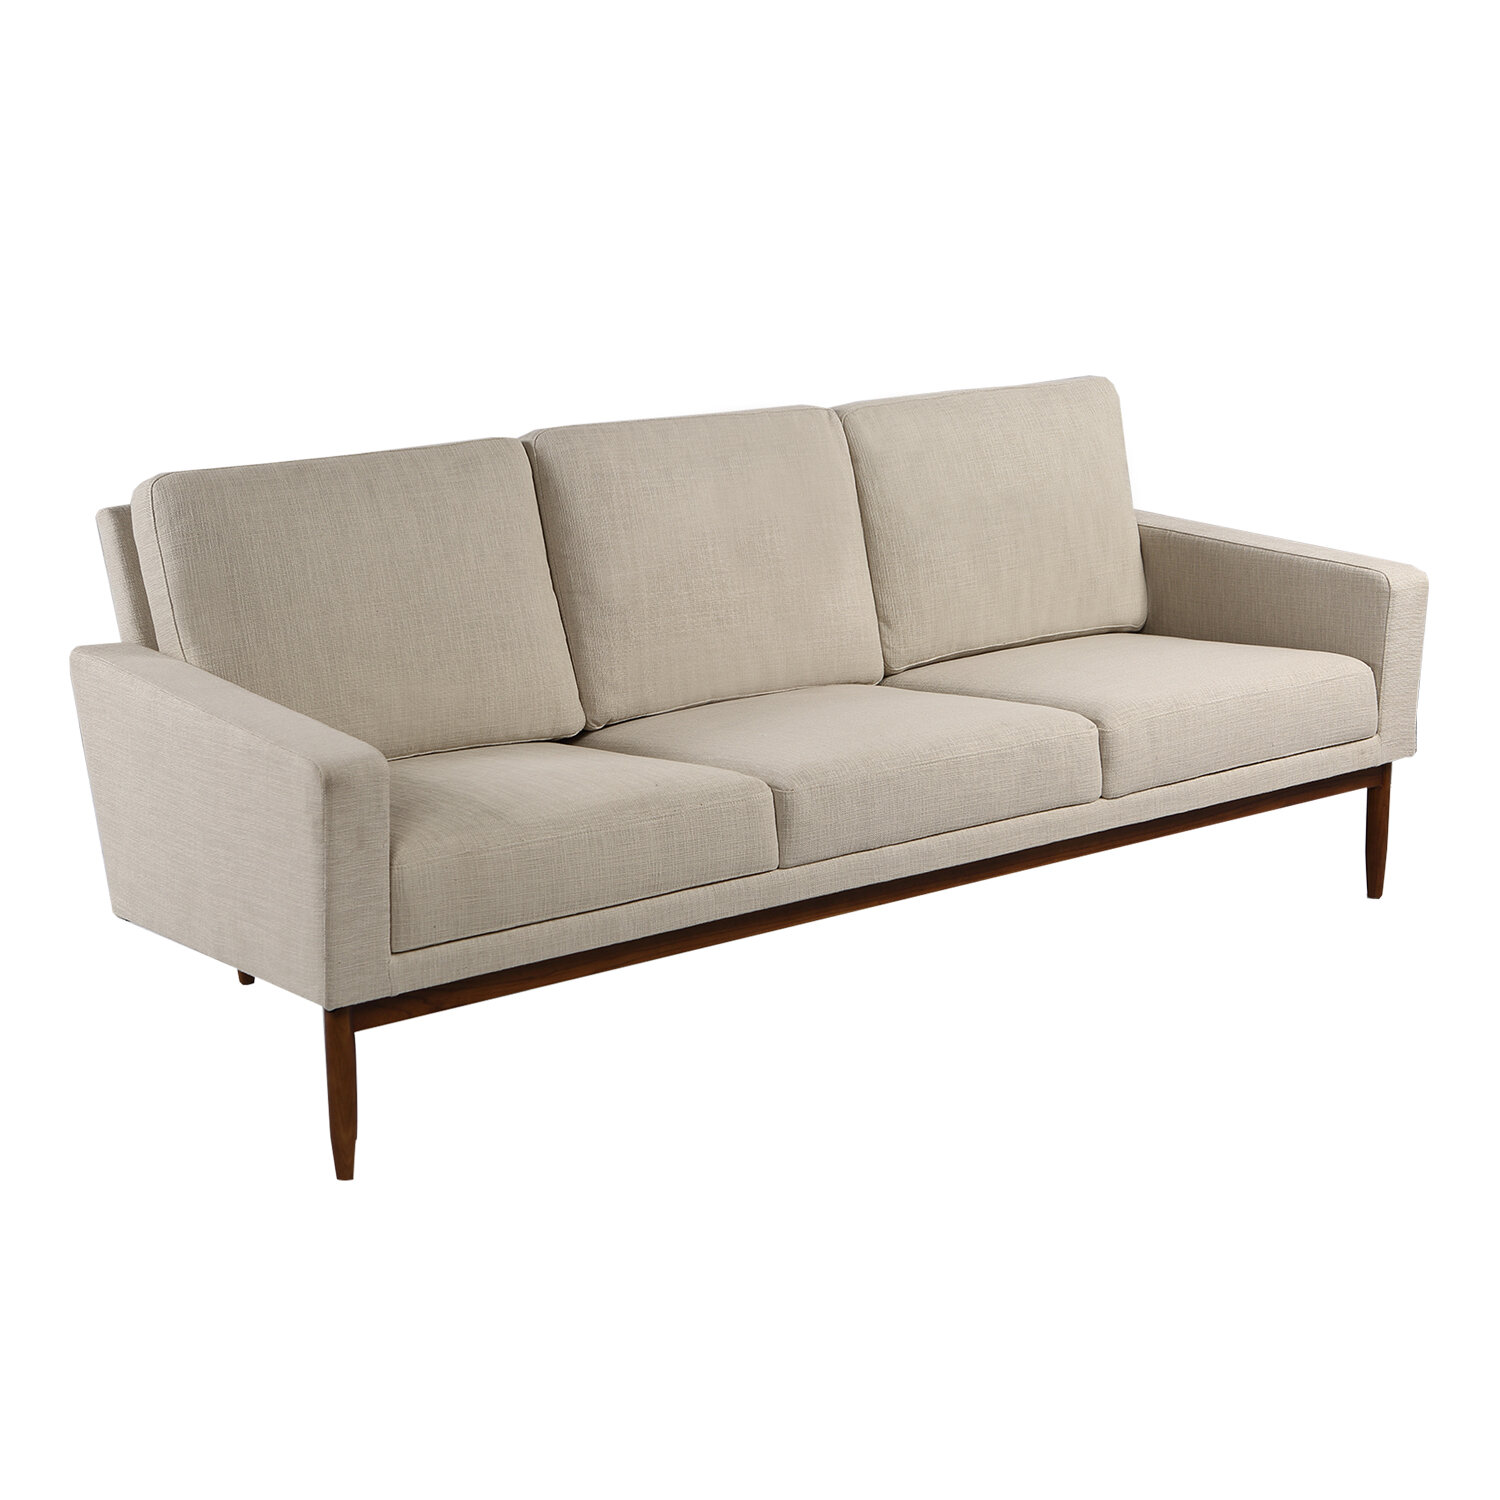 Heredia Danish Sofa